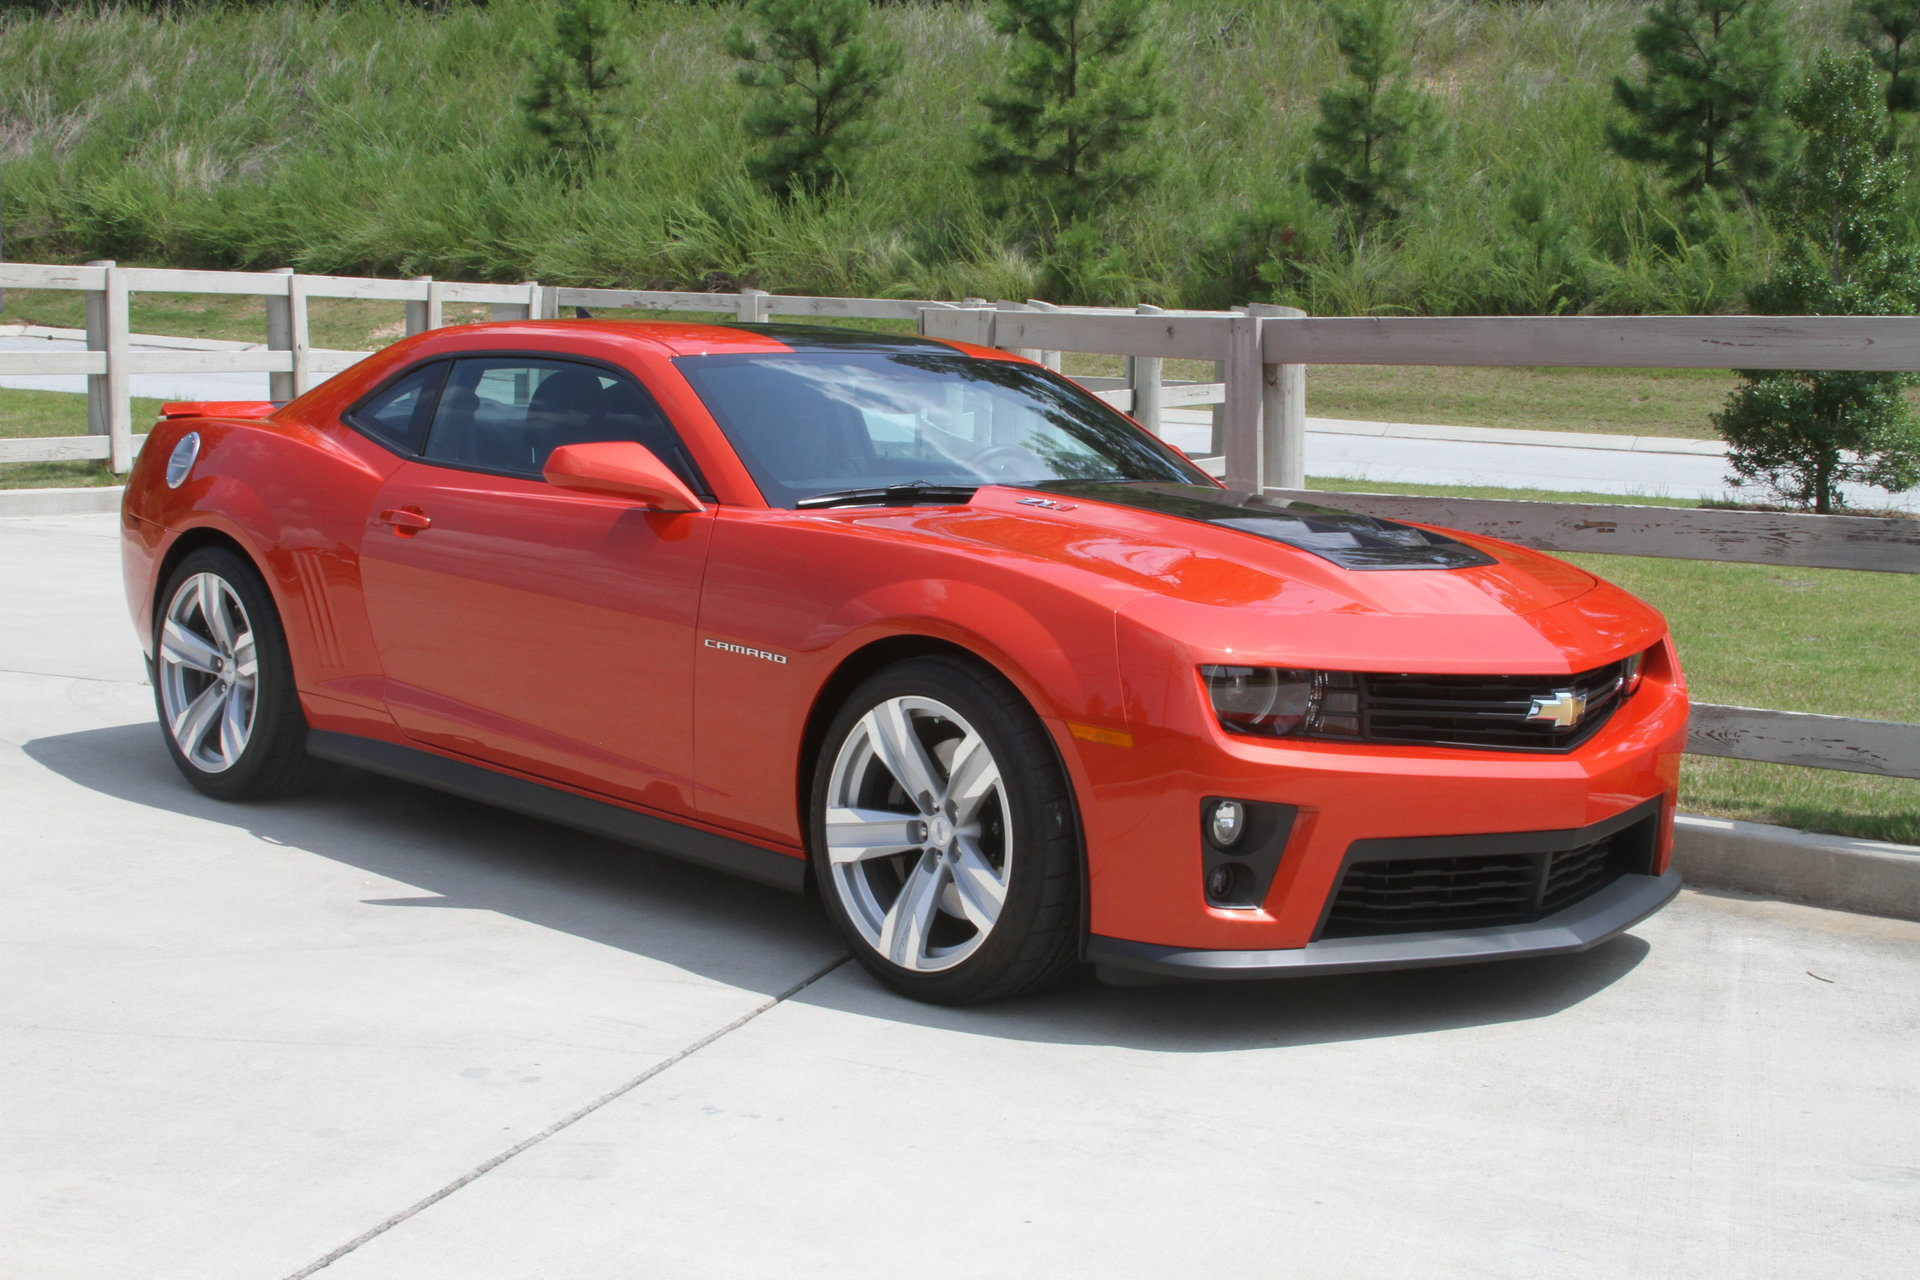 2012 chevrolet camaro zl1 for sale 72975 mcg. Black Bedroom Furniture Sets. Home Design Ideas